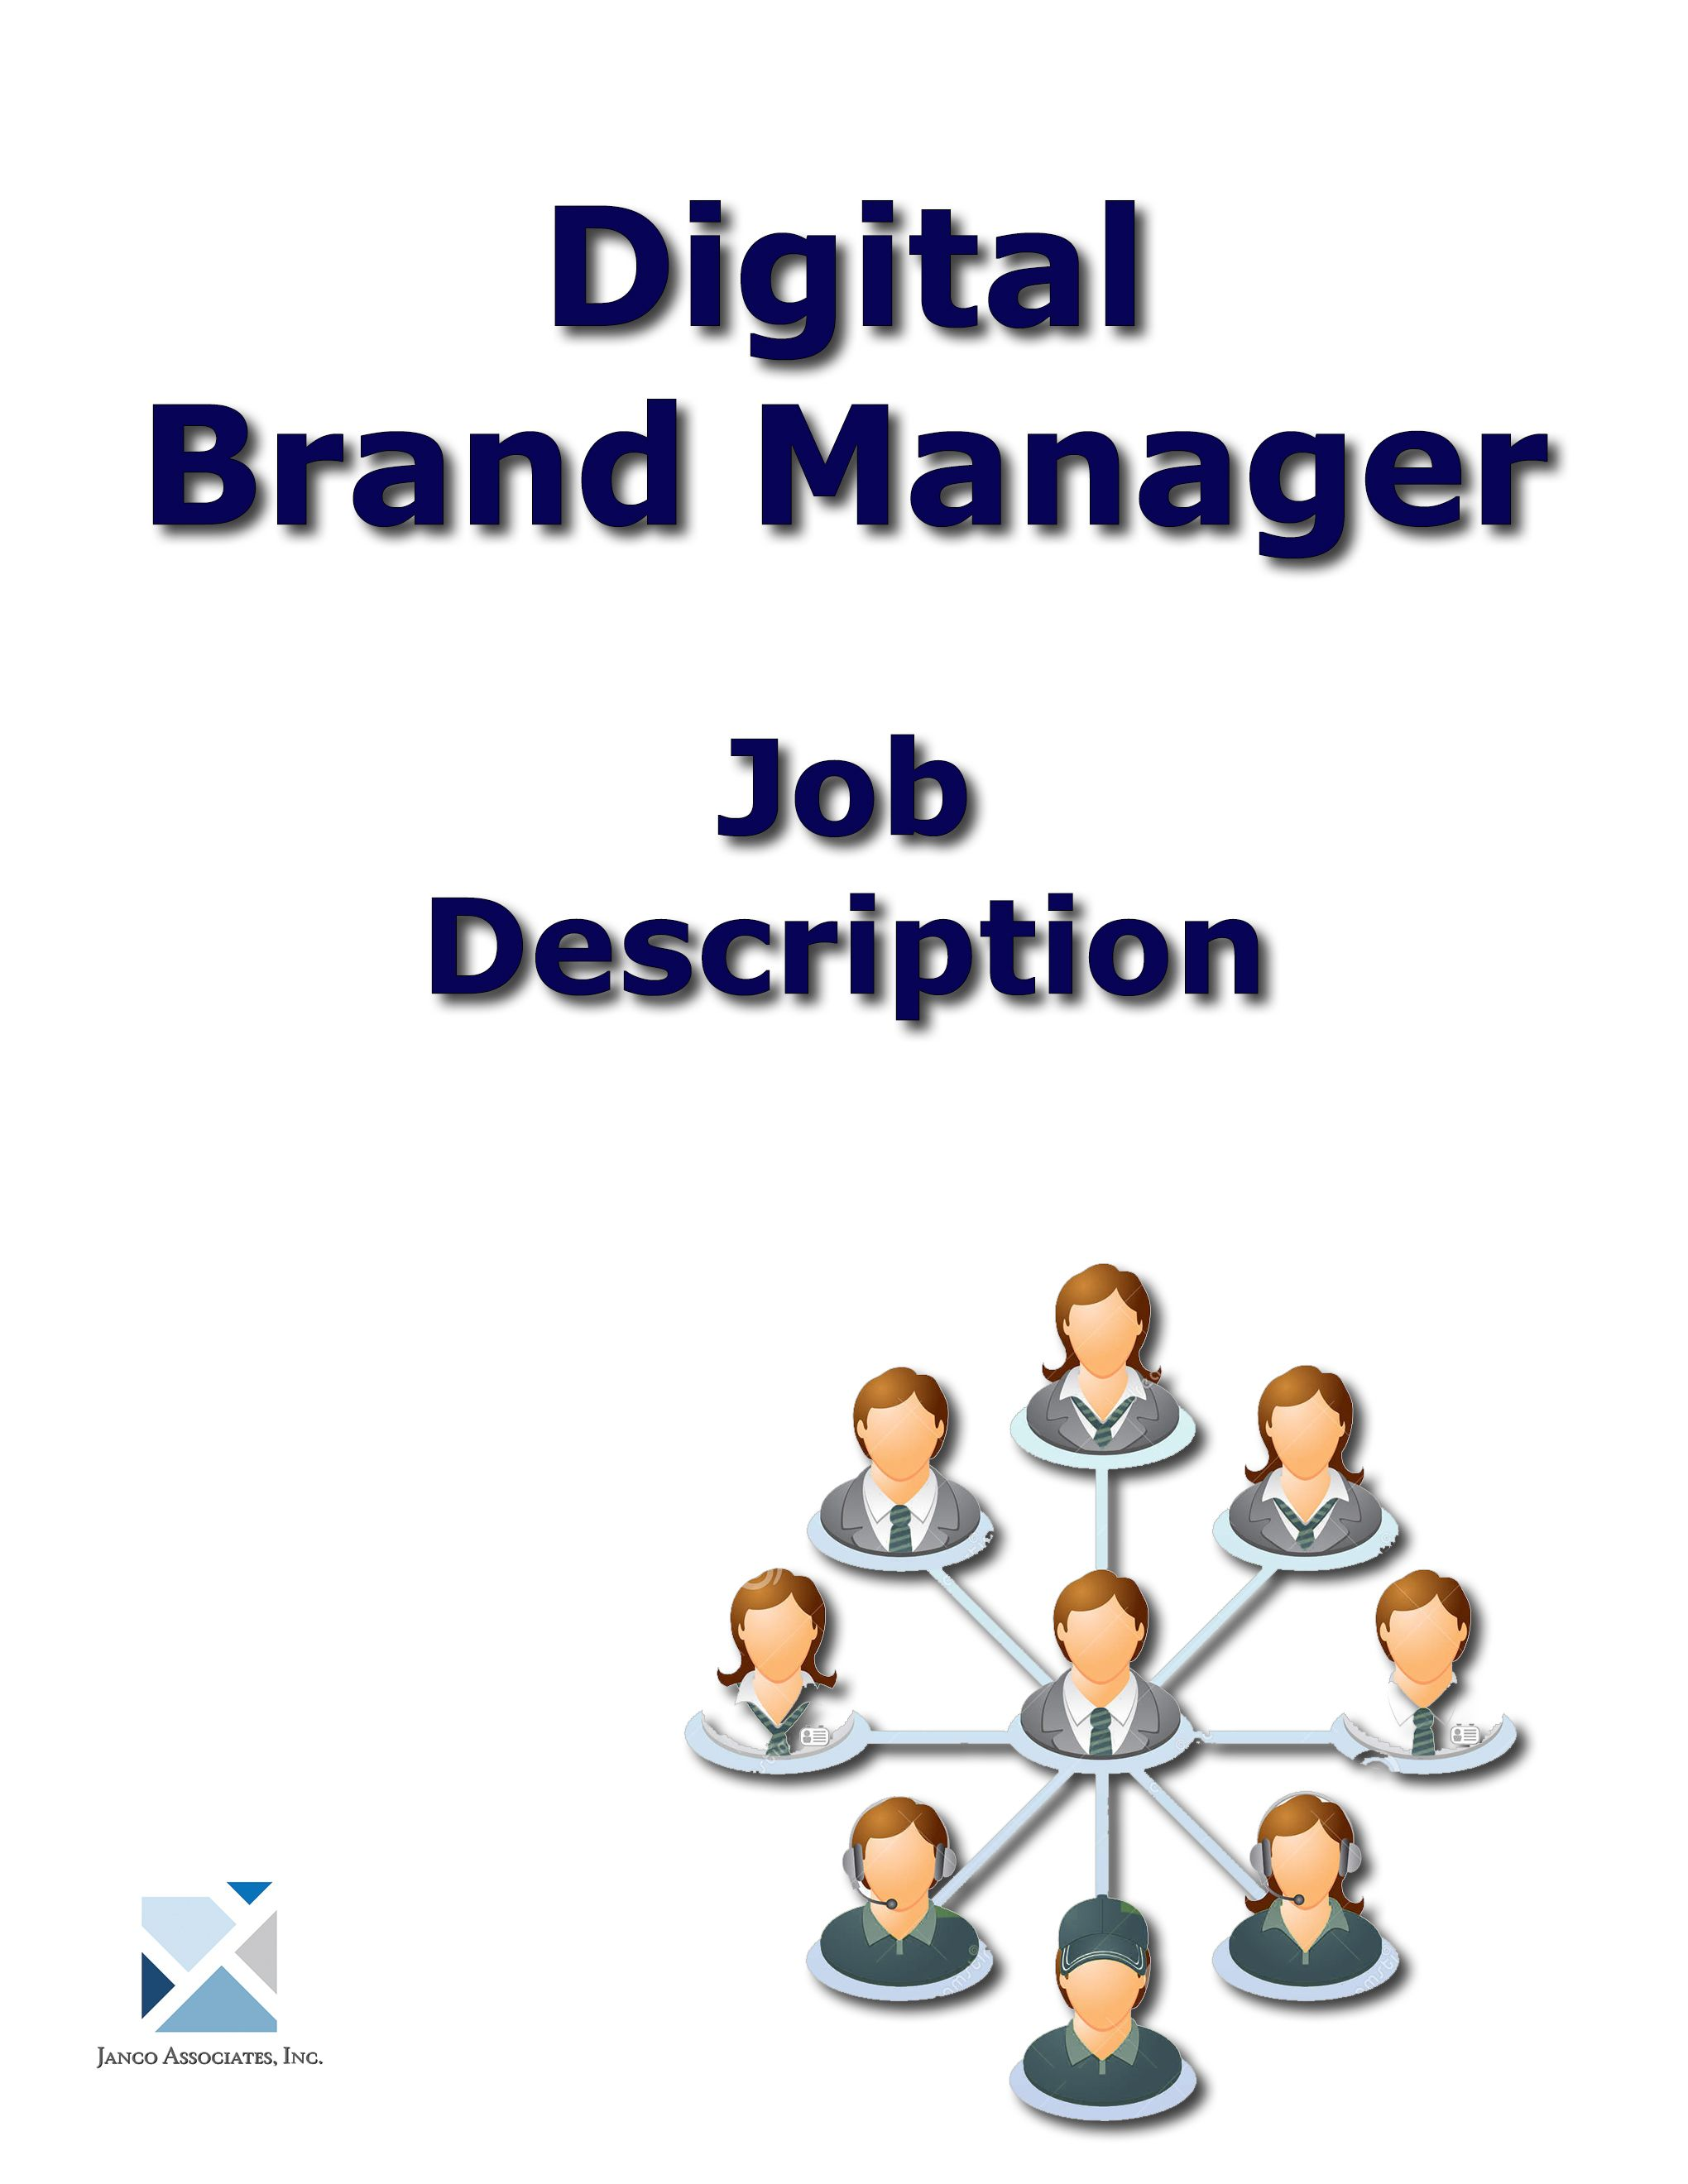 Full Digital Brand Manager Job Description Can Be Purchased Individually Or As Part Of The Full Set Of Internet A Brand Management Job Description Management